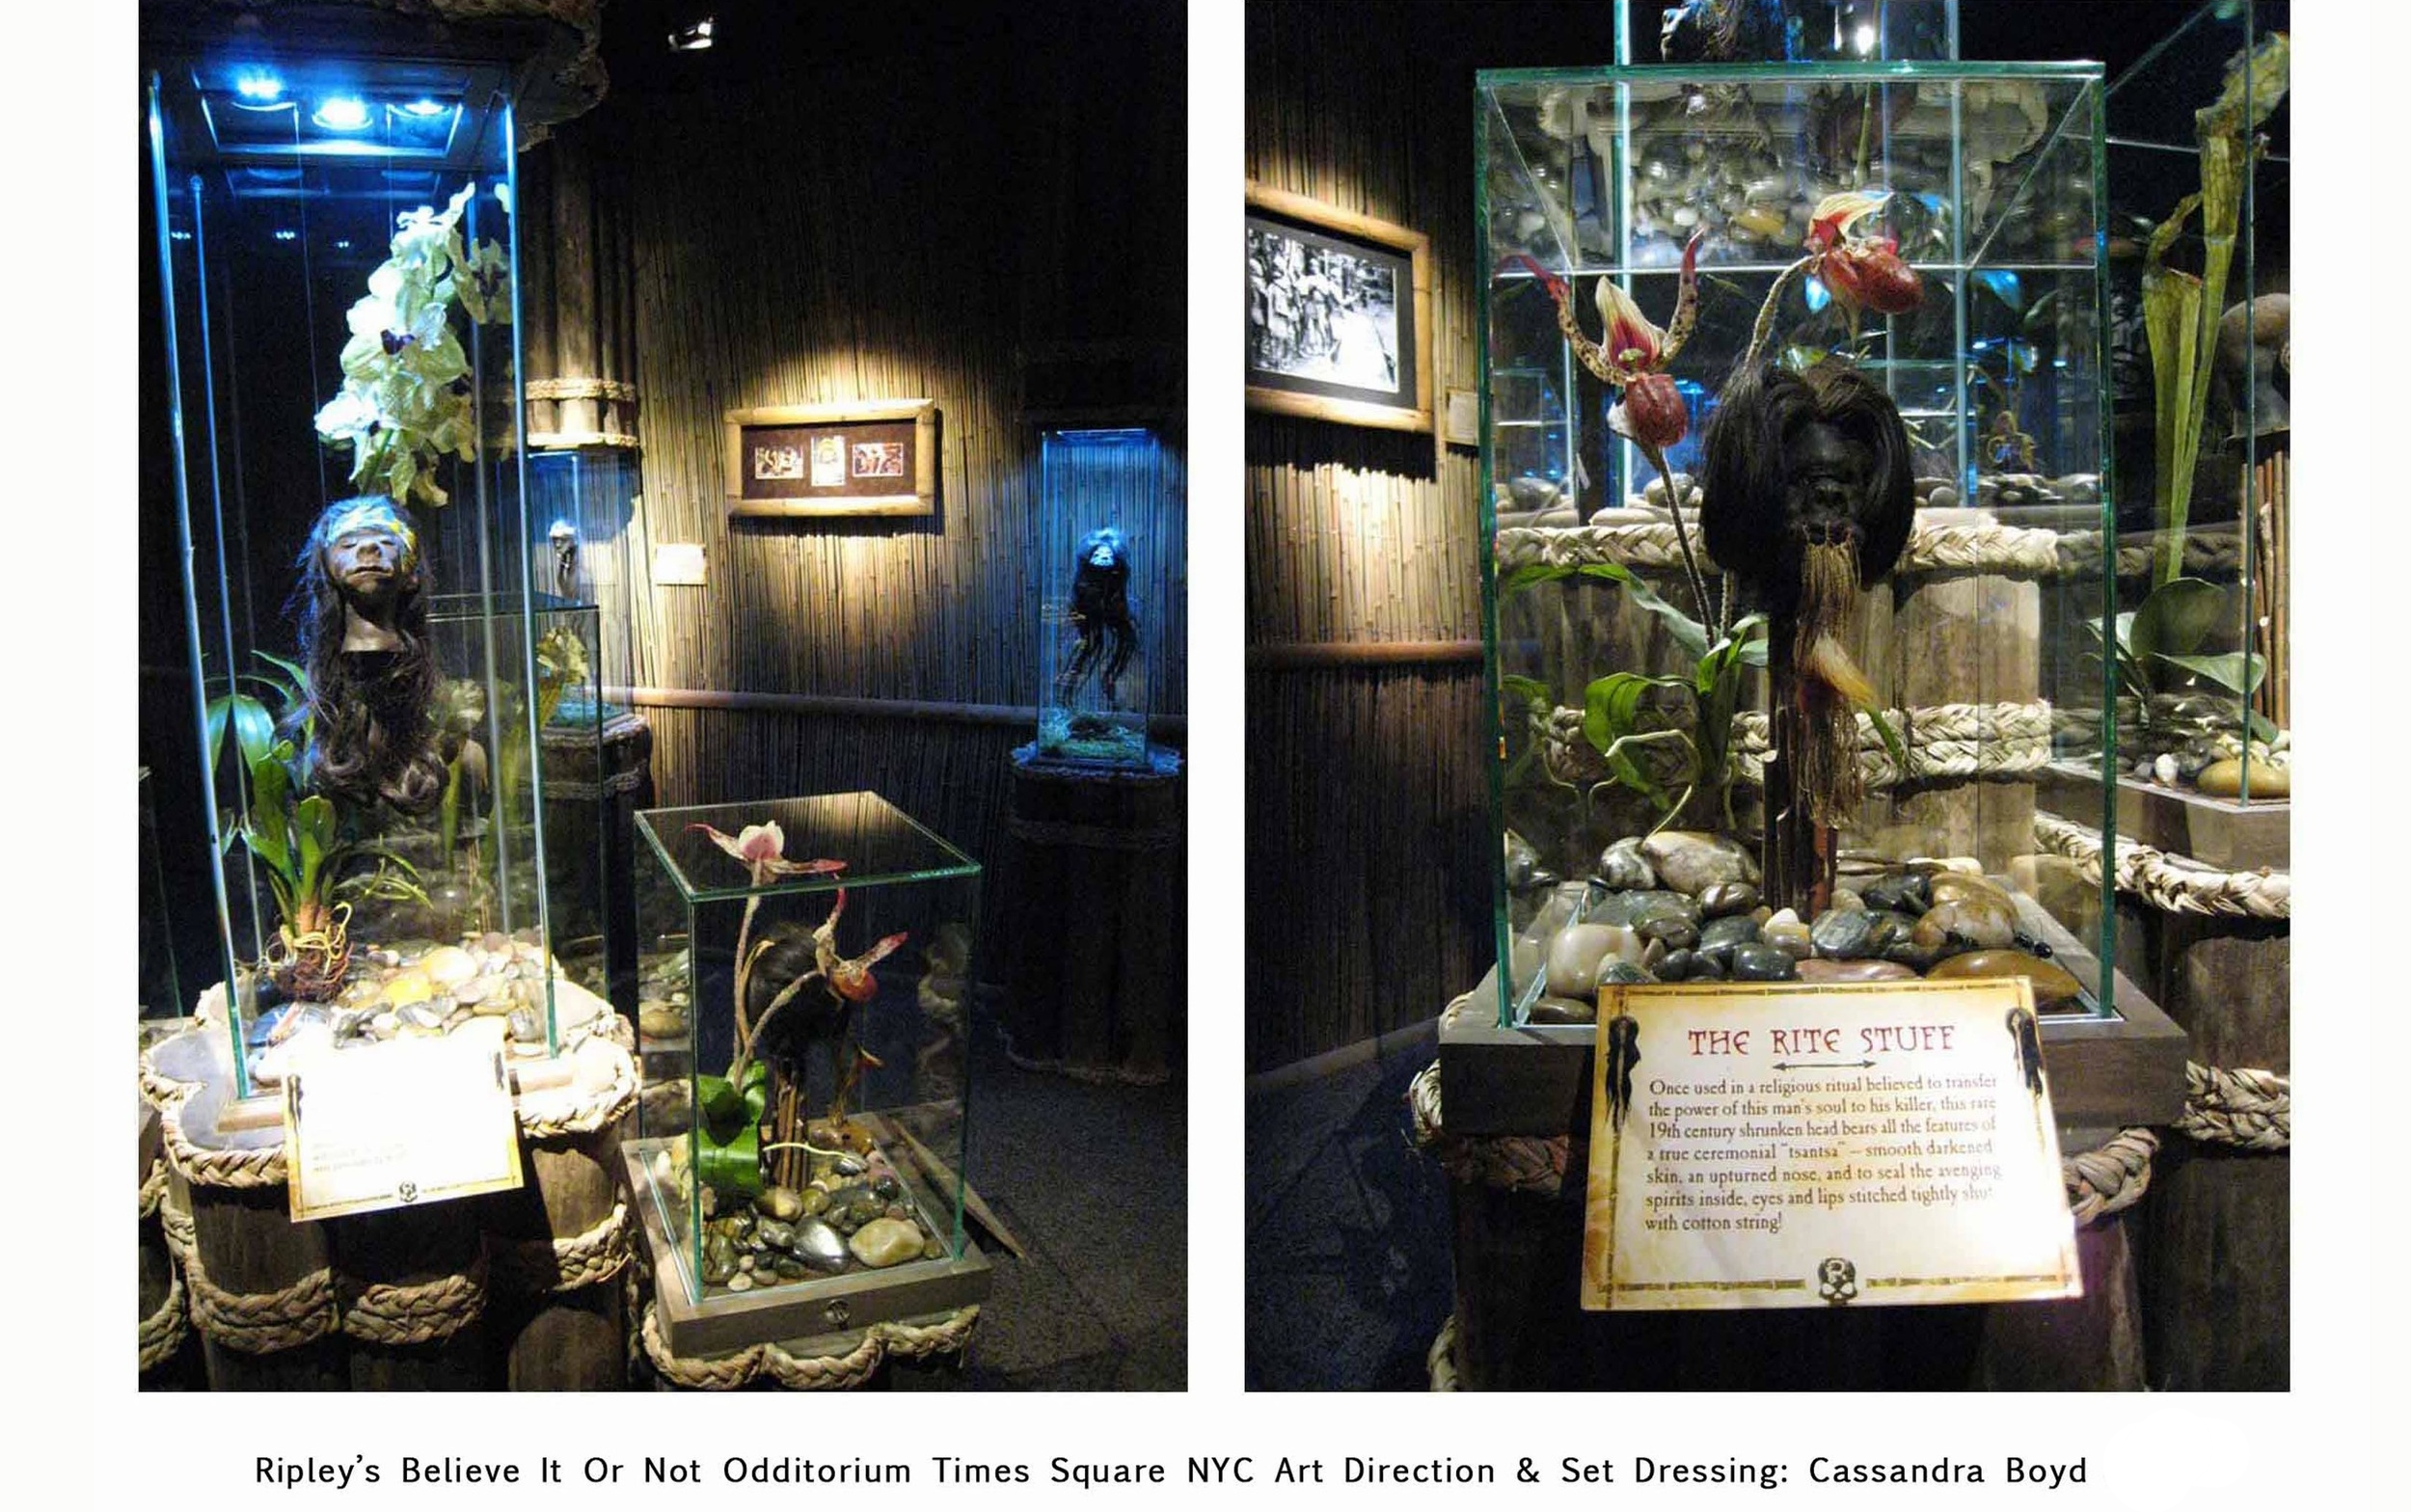 Ripley's Believe It Or Not Times Square Museum